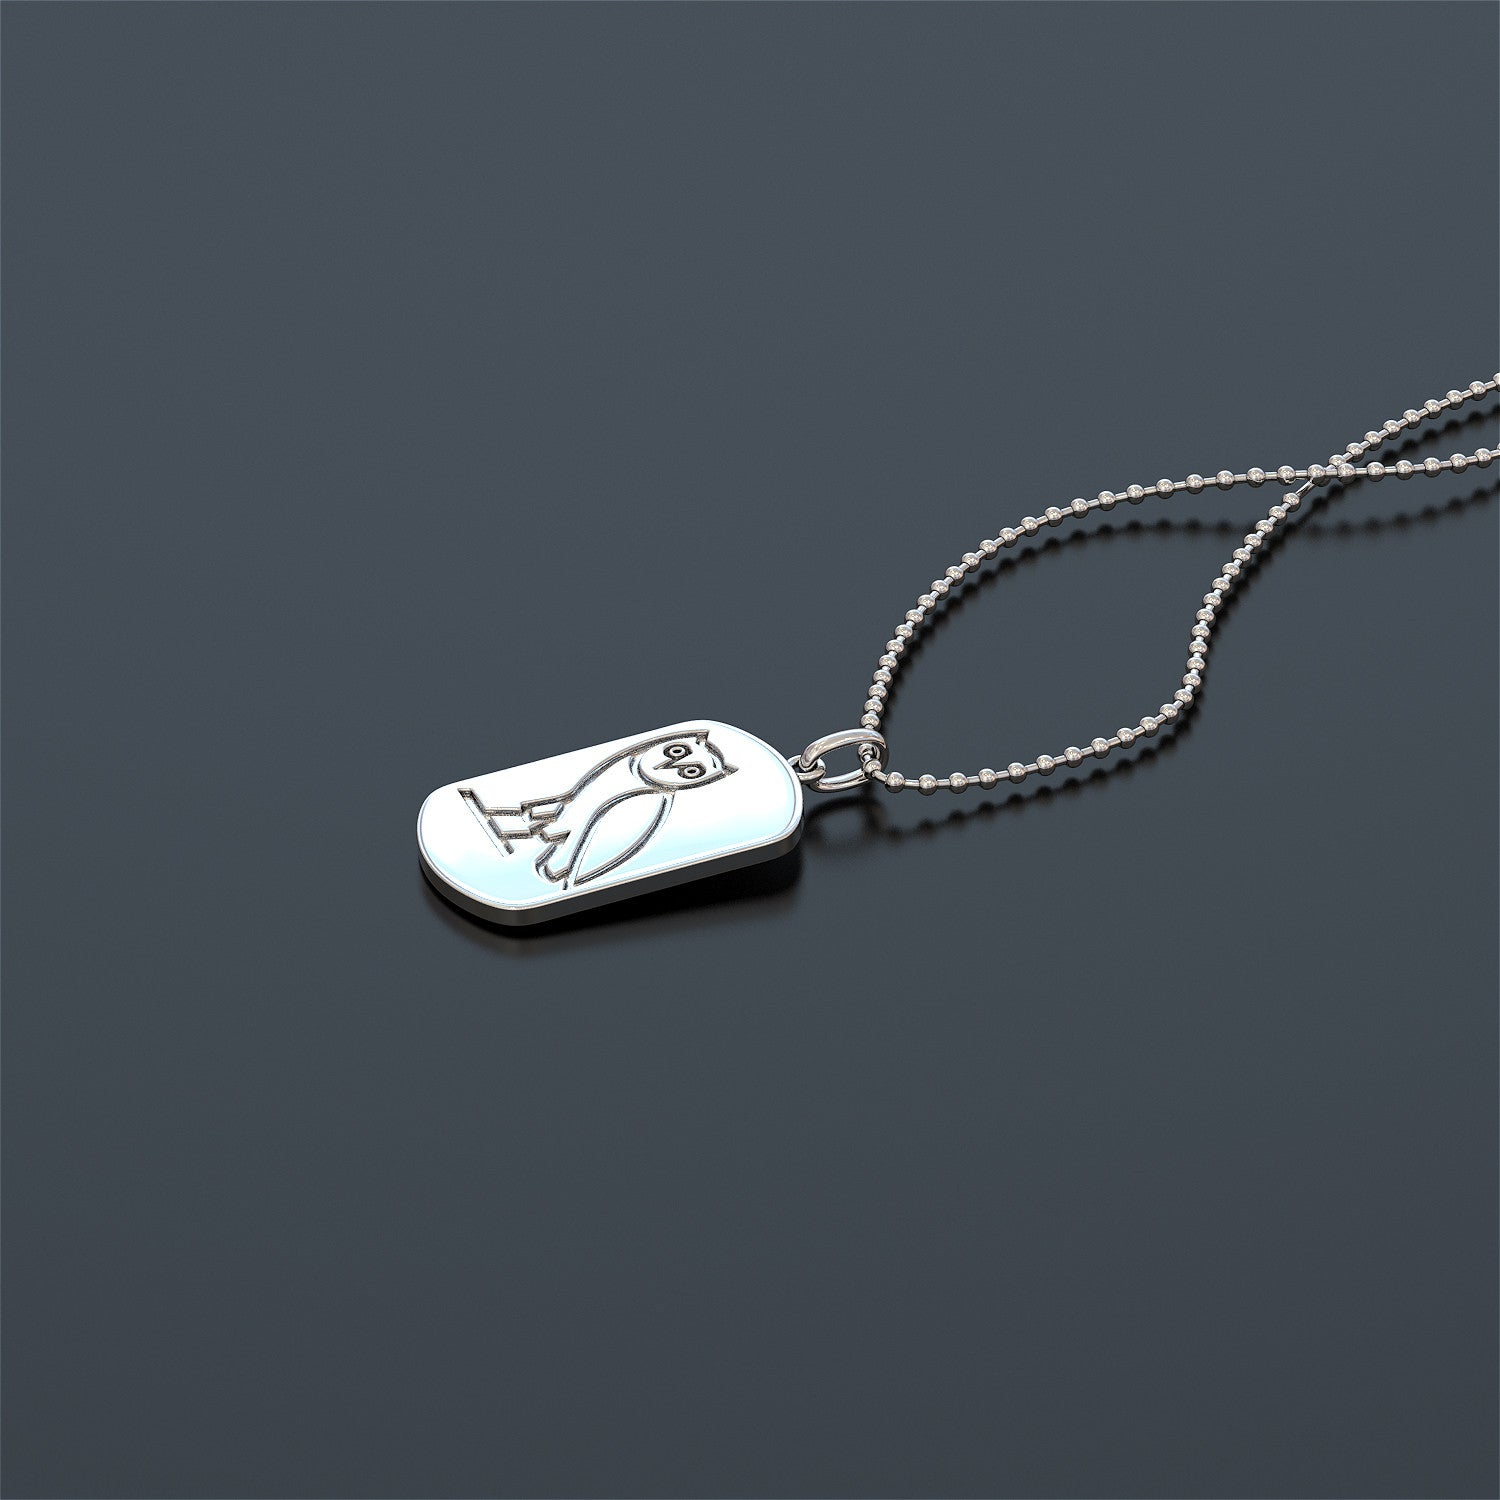 Owl Dogtag Necklace - VERY LIMITED NUMBERS